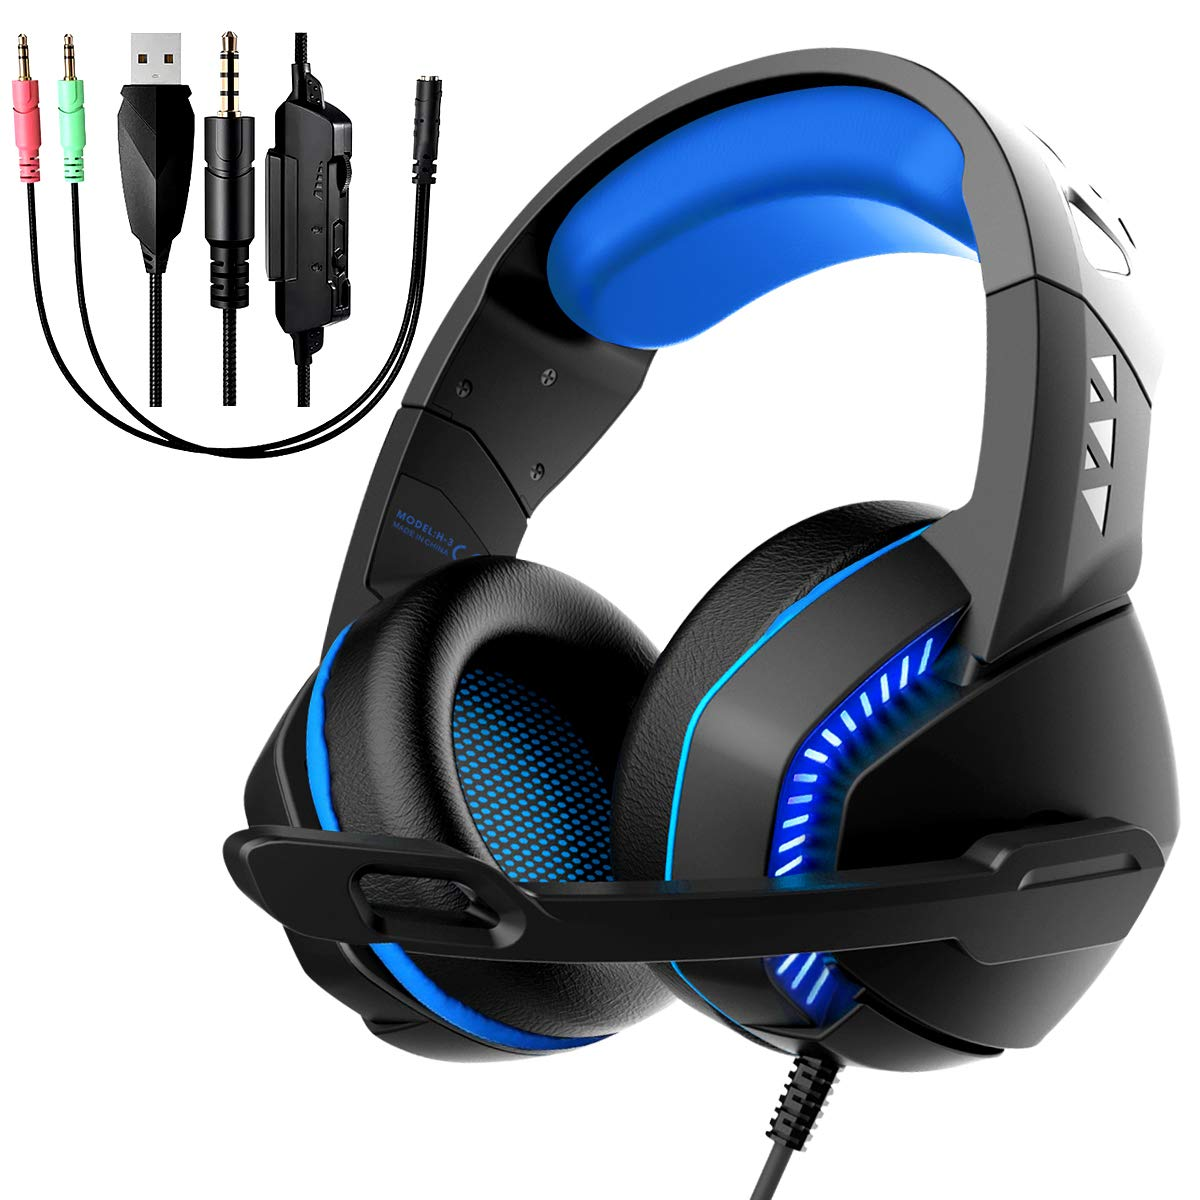 Gaming Headset with Microphone, Noise Reduction Headphone, Over-Ear Bass Surround Sound Stereo Earphone, Volume Control Earmuffs LED Lights for PC Gamers/PS4/Xbox One/Laptop/Playstation (Black Blue)